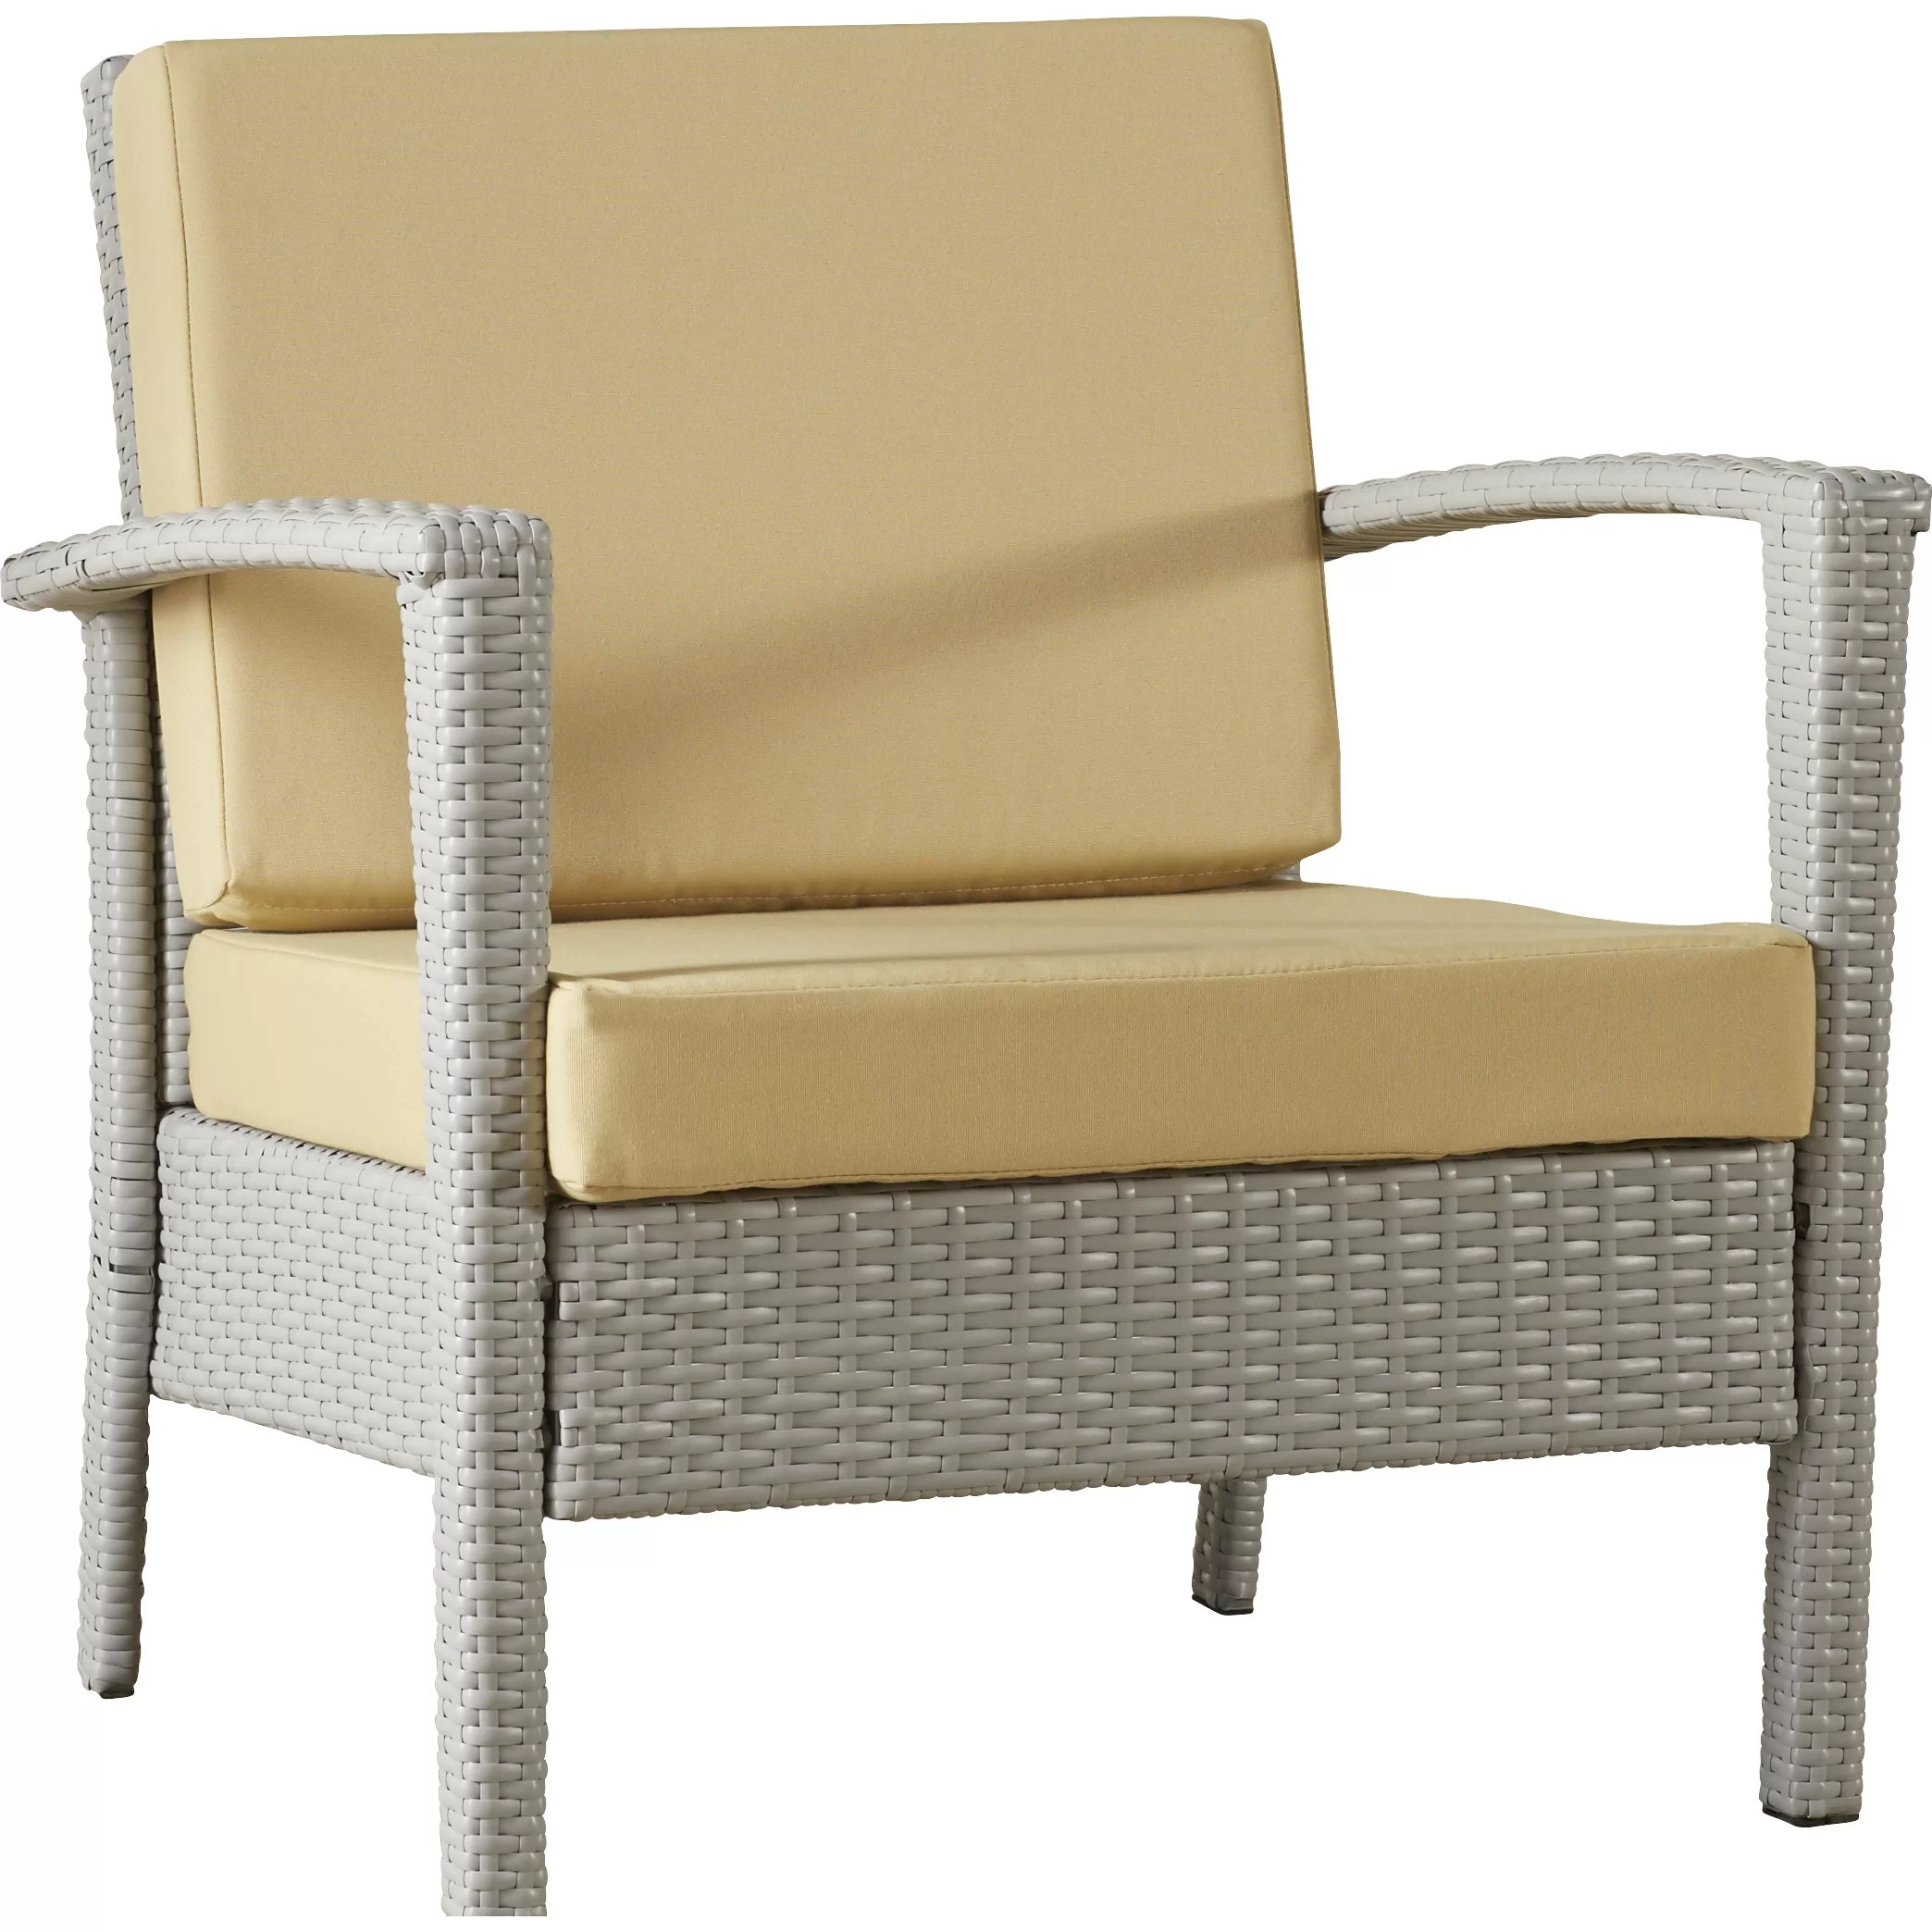 one piece patio chair cushions sitting on abdominal exercises brayden studio piscataway 4 outdoor dining